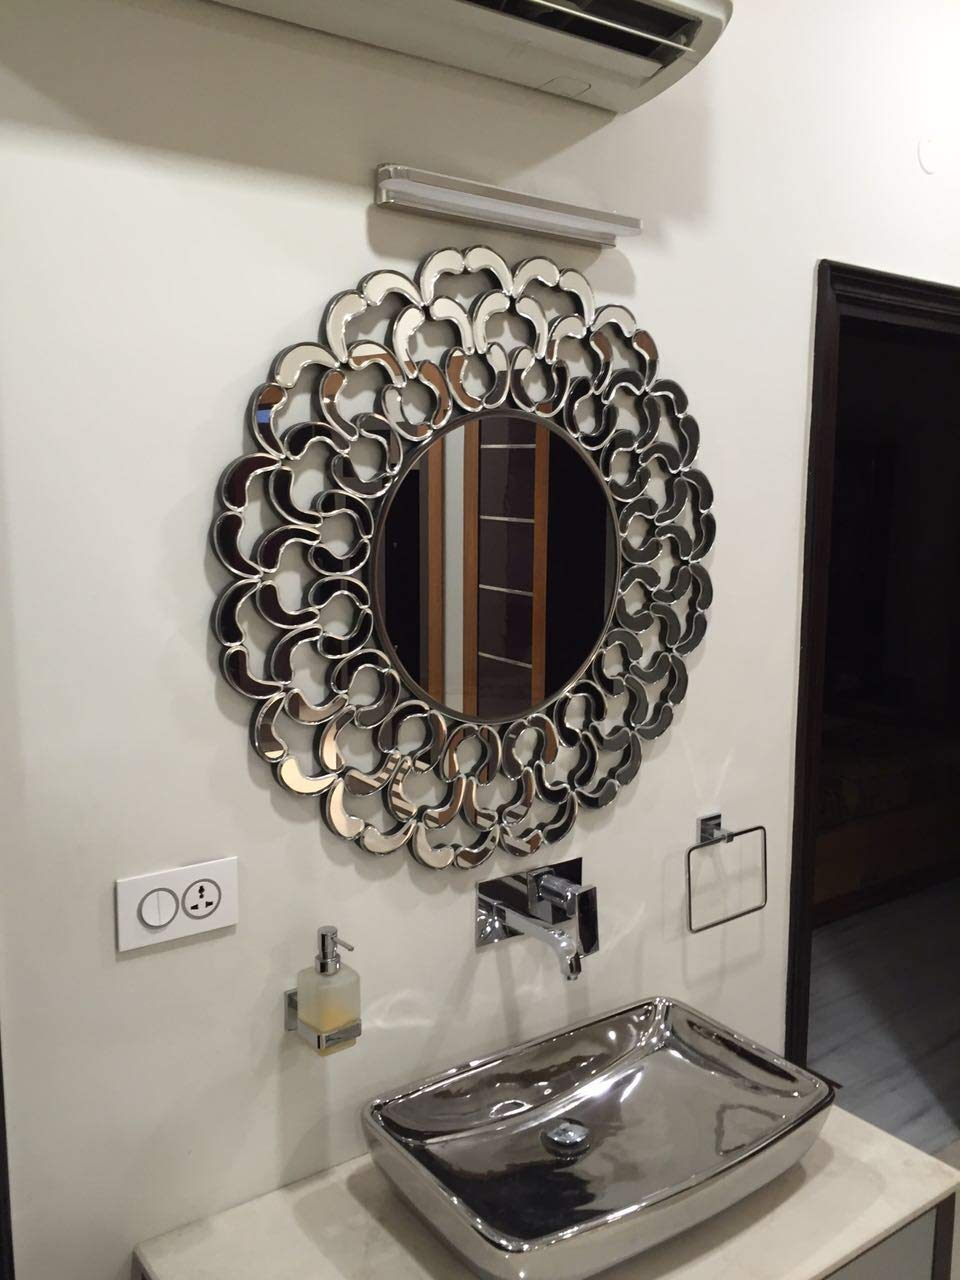 Buy Quality Glass Silver Round Decorative Wall Mirror For Living Room Wall Mirror Mirror For Bathrooms Mirror In Home Decorative Mirror Modern Mirror Mirror Size